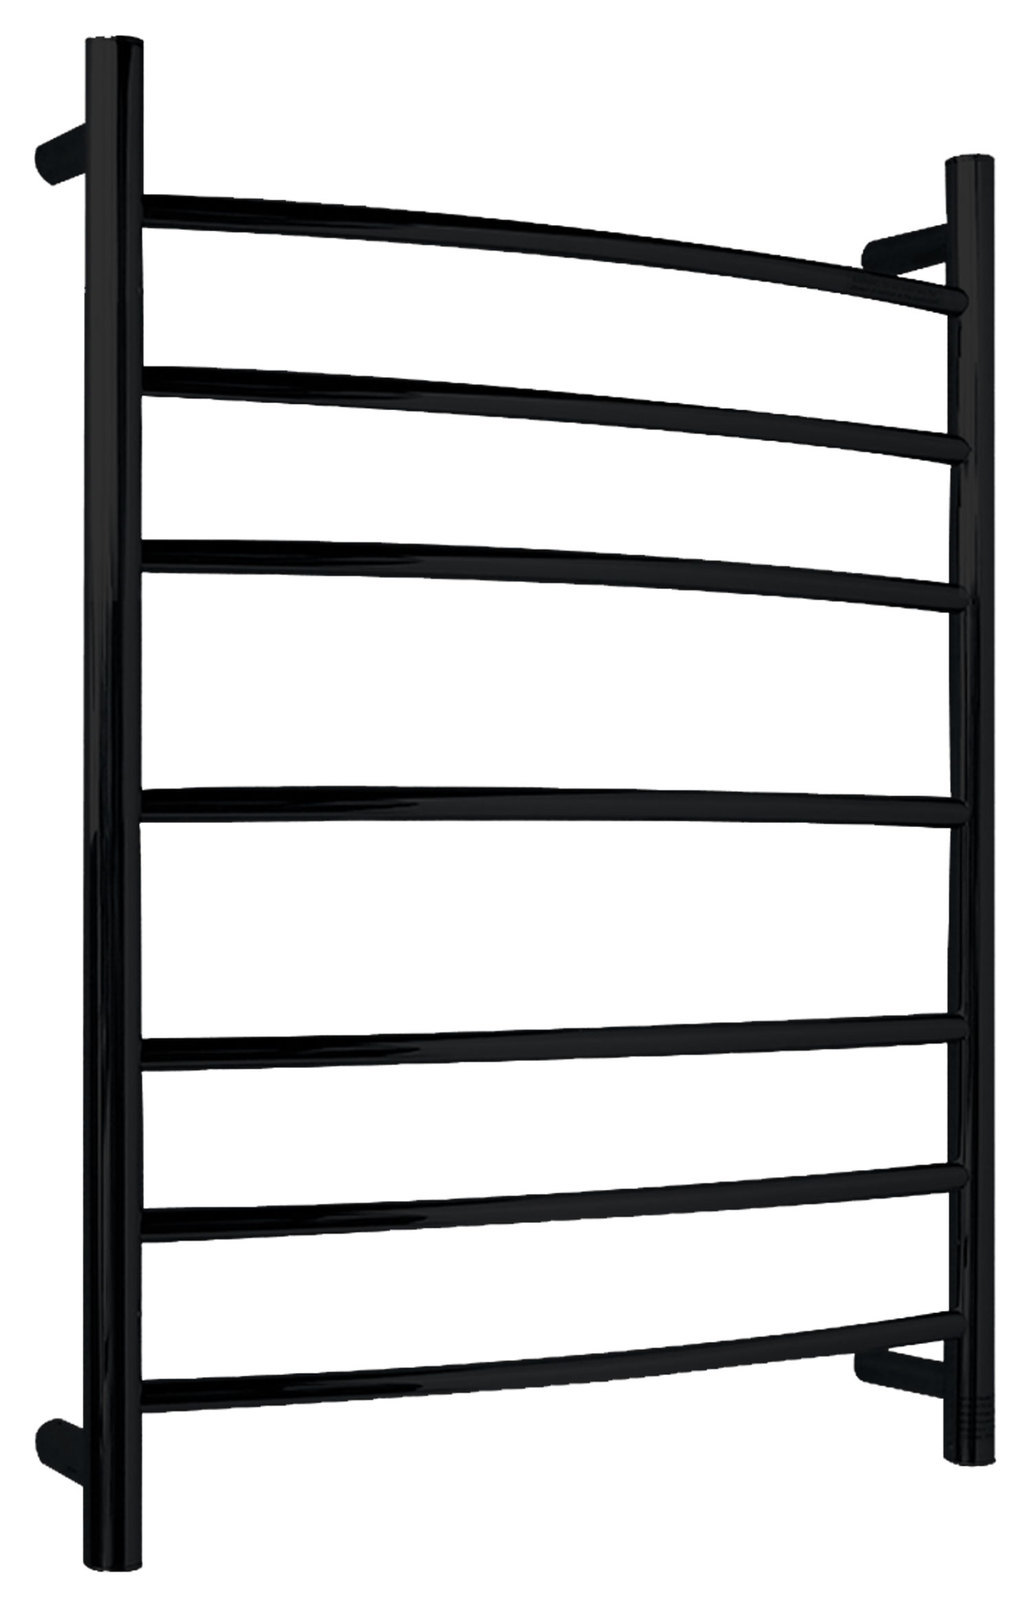 Primary image for Gown 7-Bar Stainless Steel Wall Mounted Towel Warmer in Matte Black